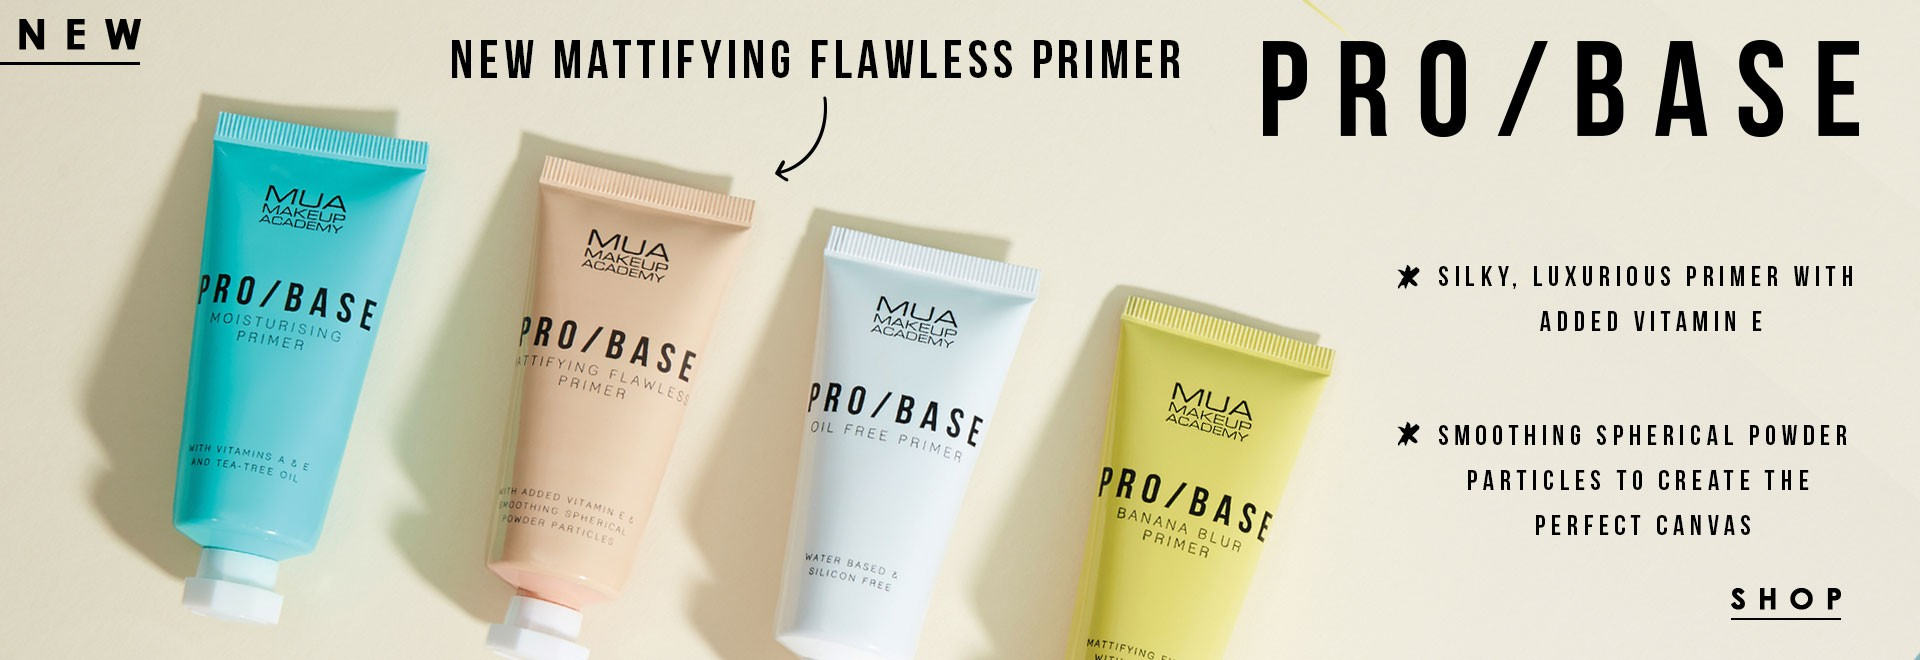 MUA PRO / BASE MATTIFYING FLAWLESS PRIMER